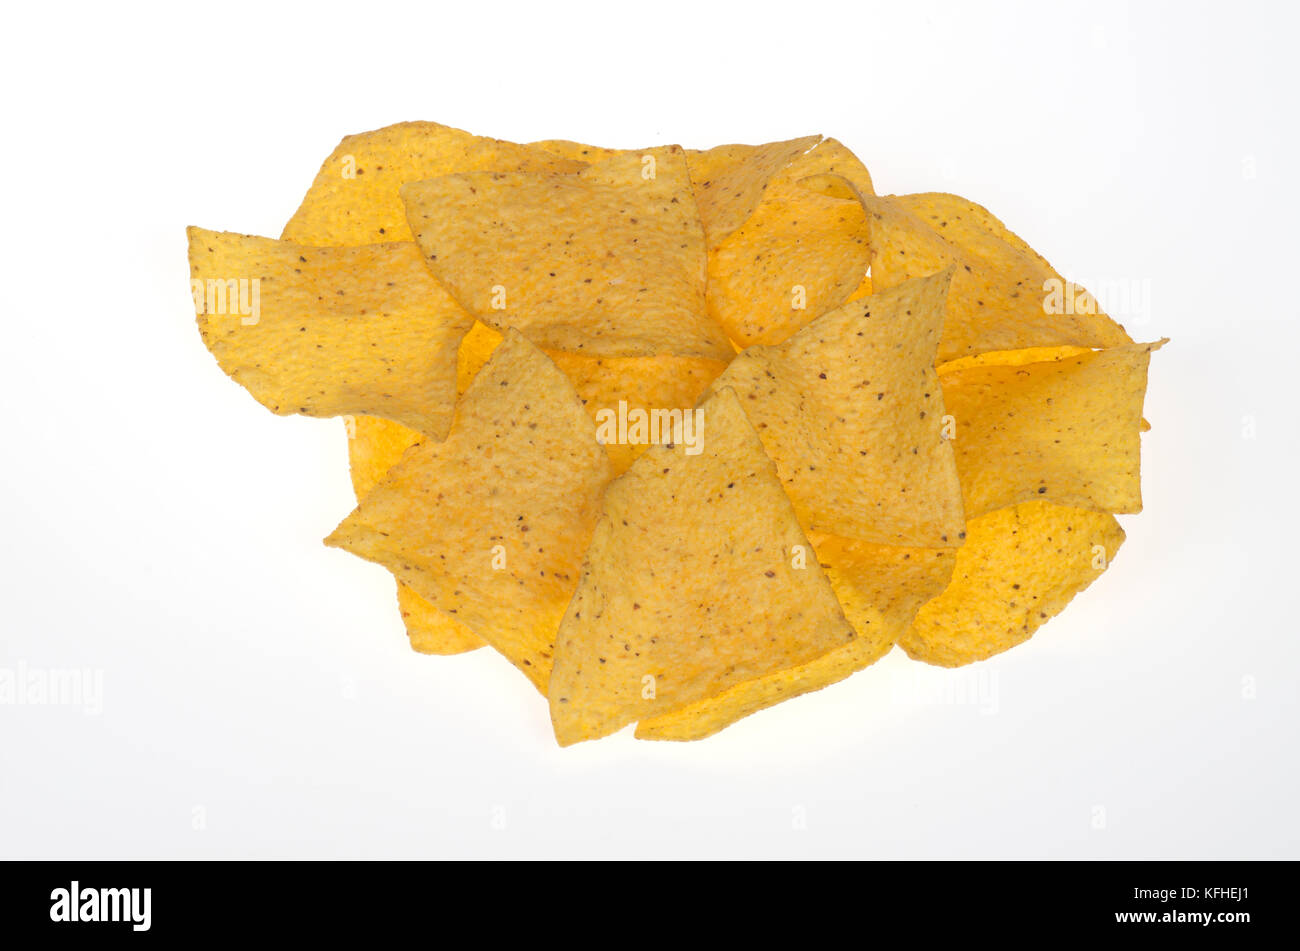 Organic yellow corn chips isolated on white background - Stock Image